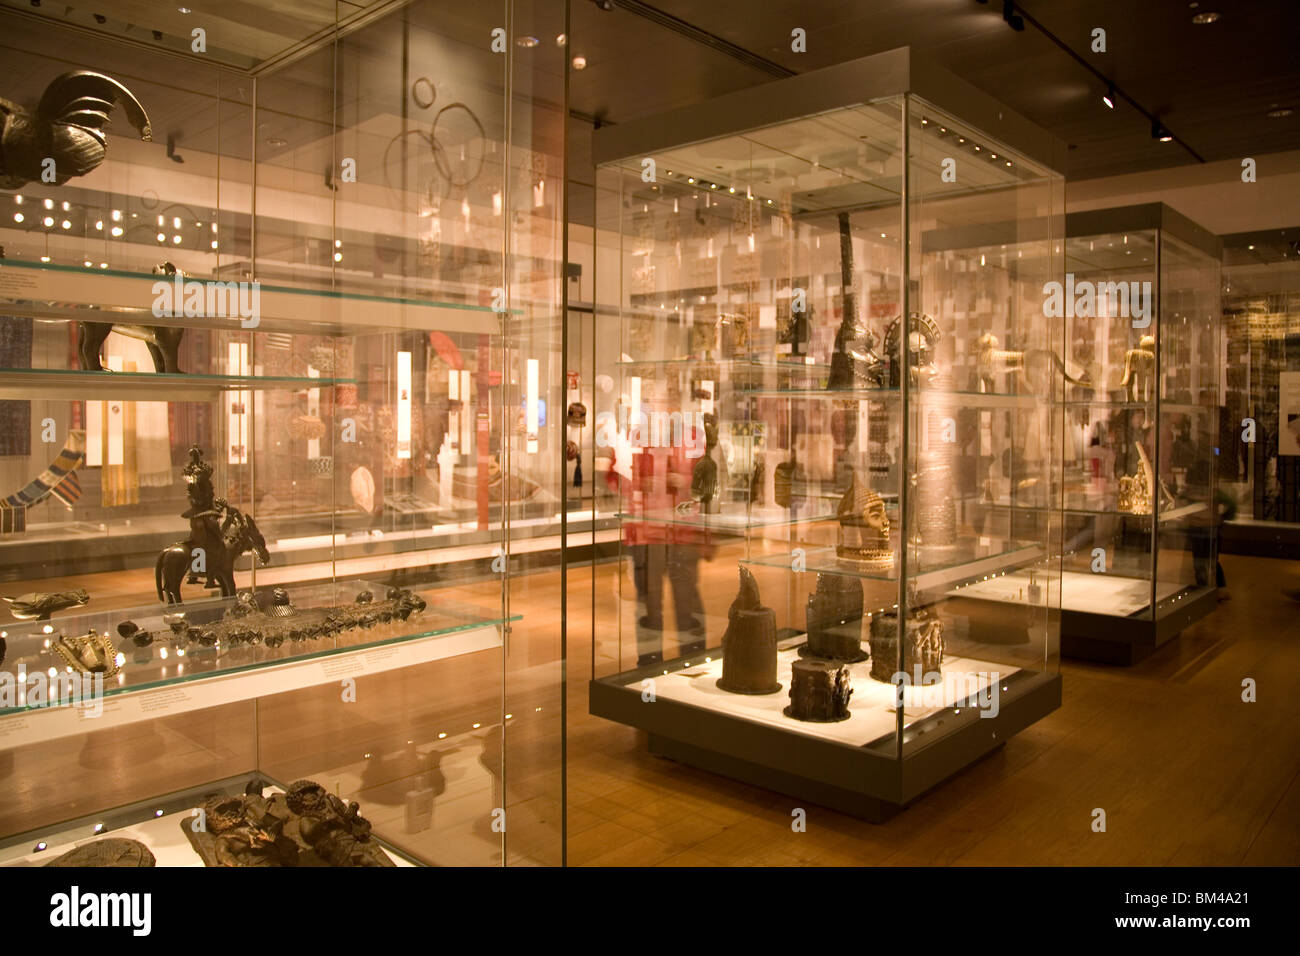 British Museum ethnography collections - Stock Image